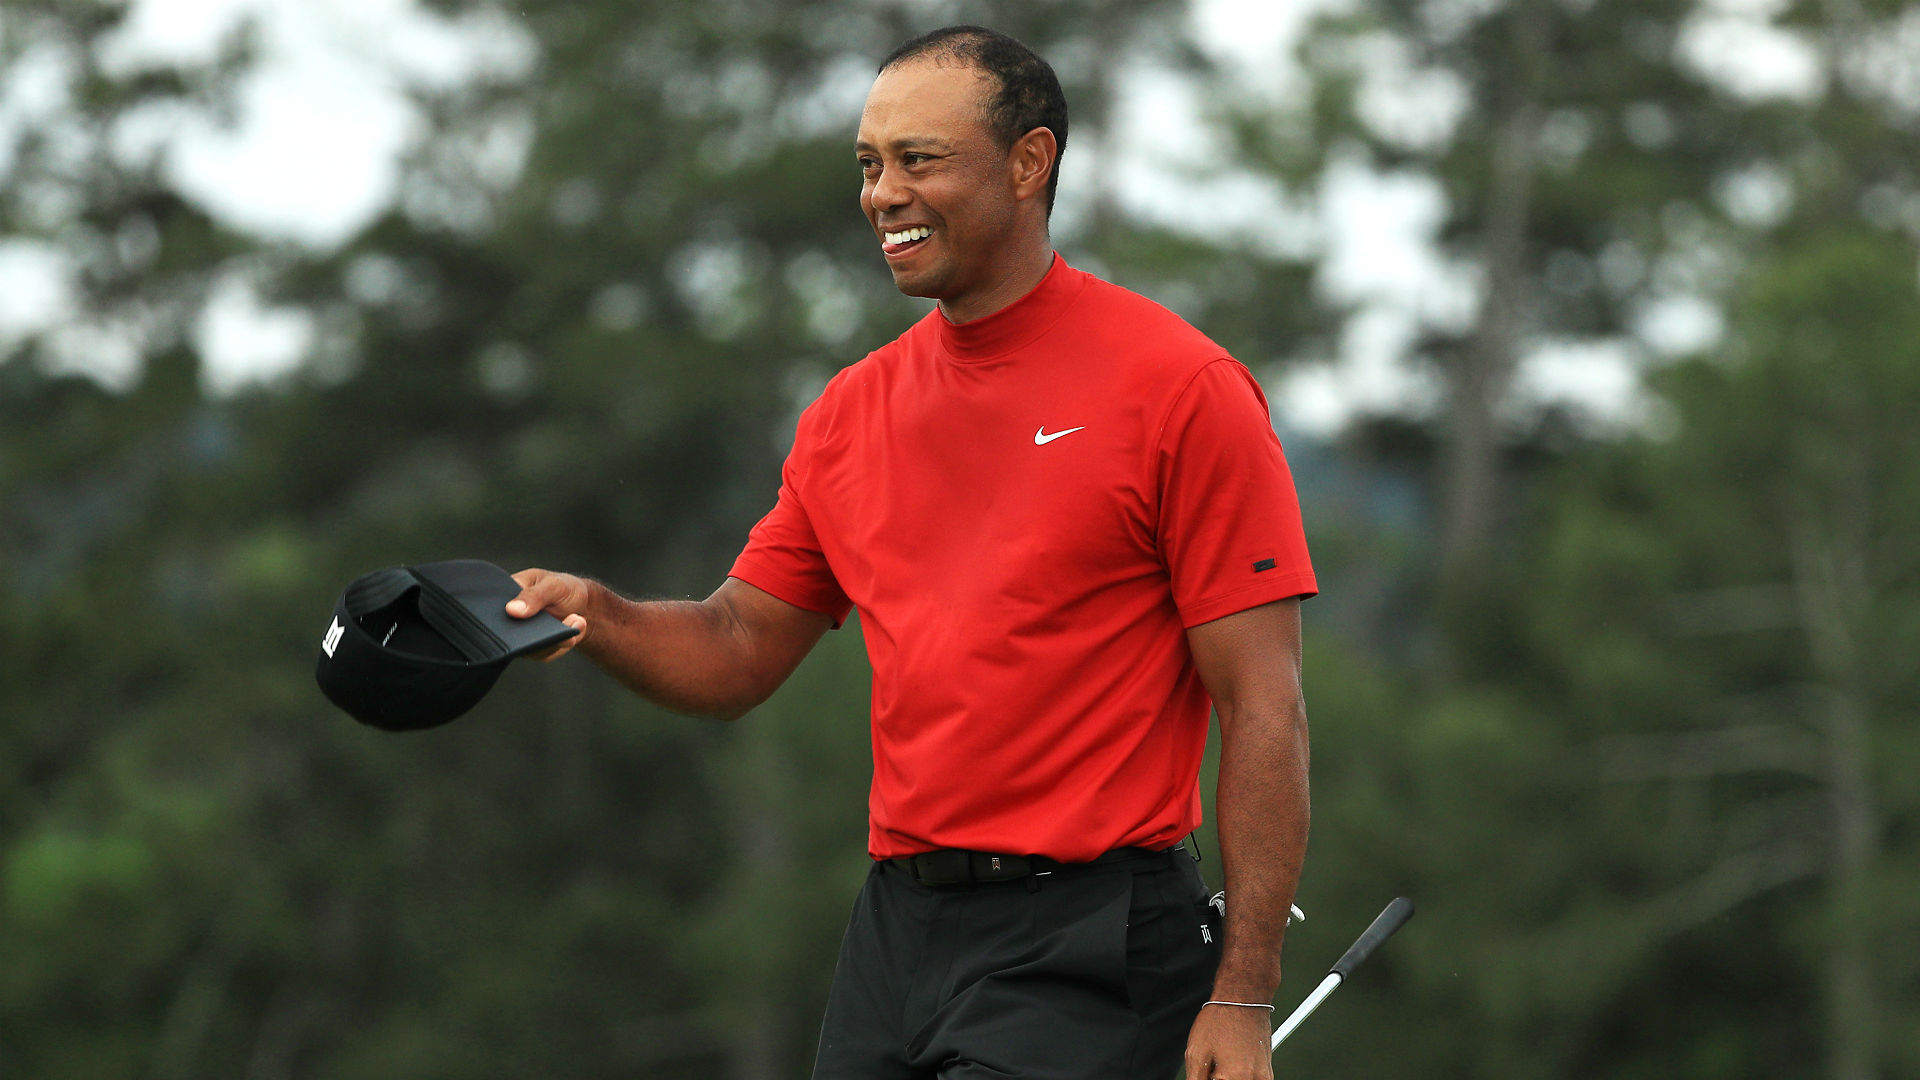 Trump to award Woods Presidential Medal of Freedom after Masters triumph